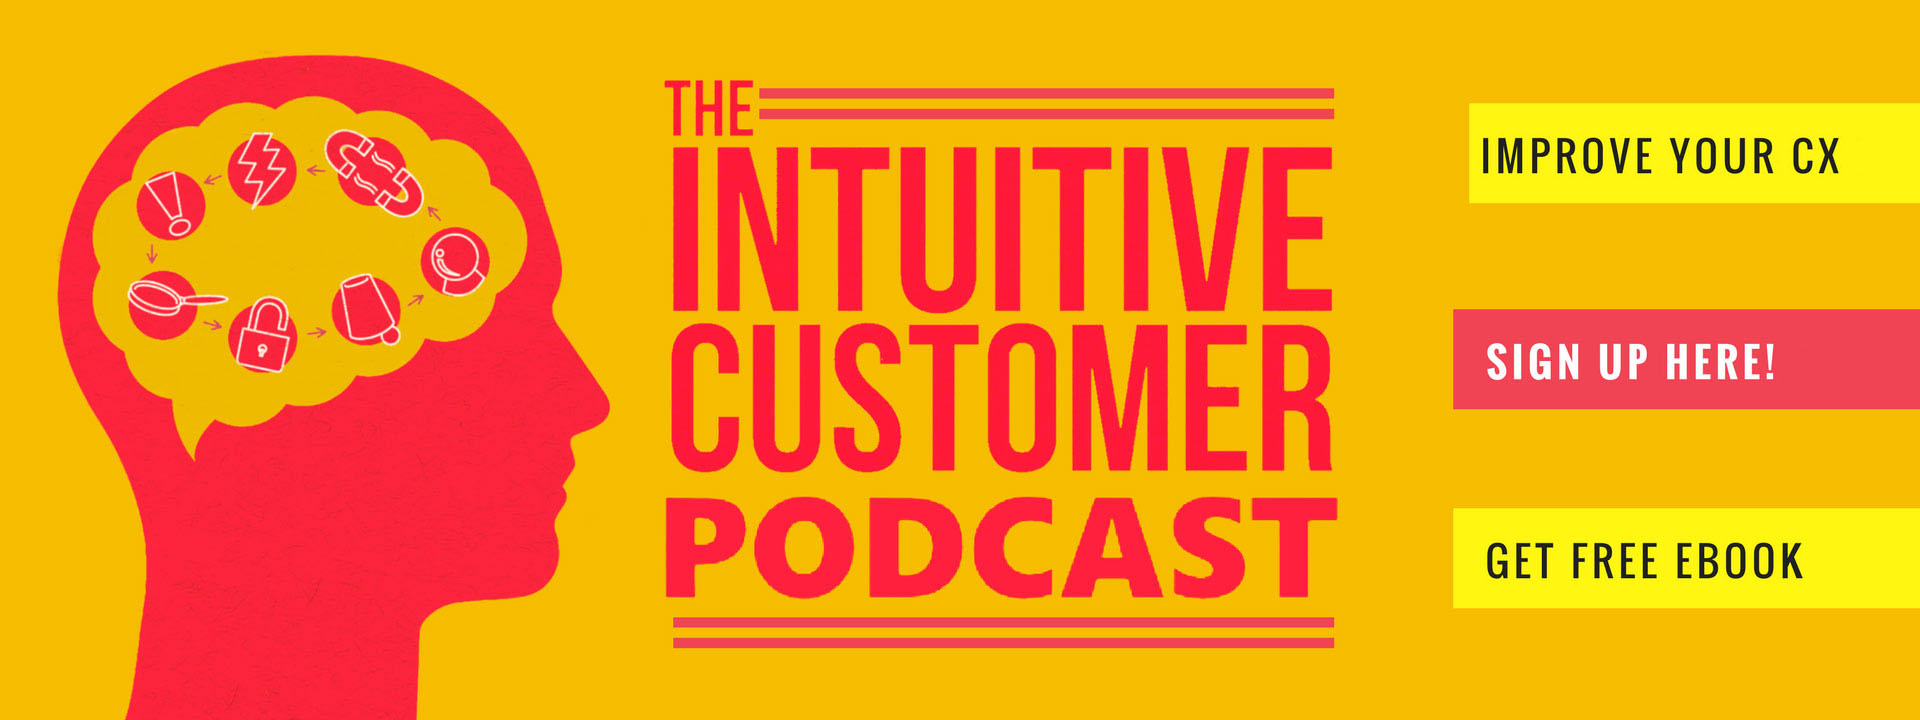 Customer Experience Consultants Business Podcasts